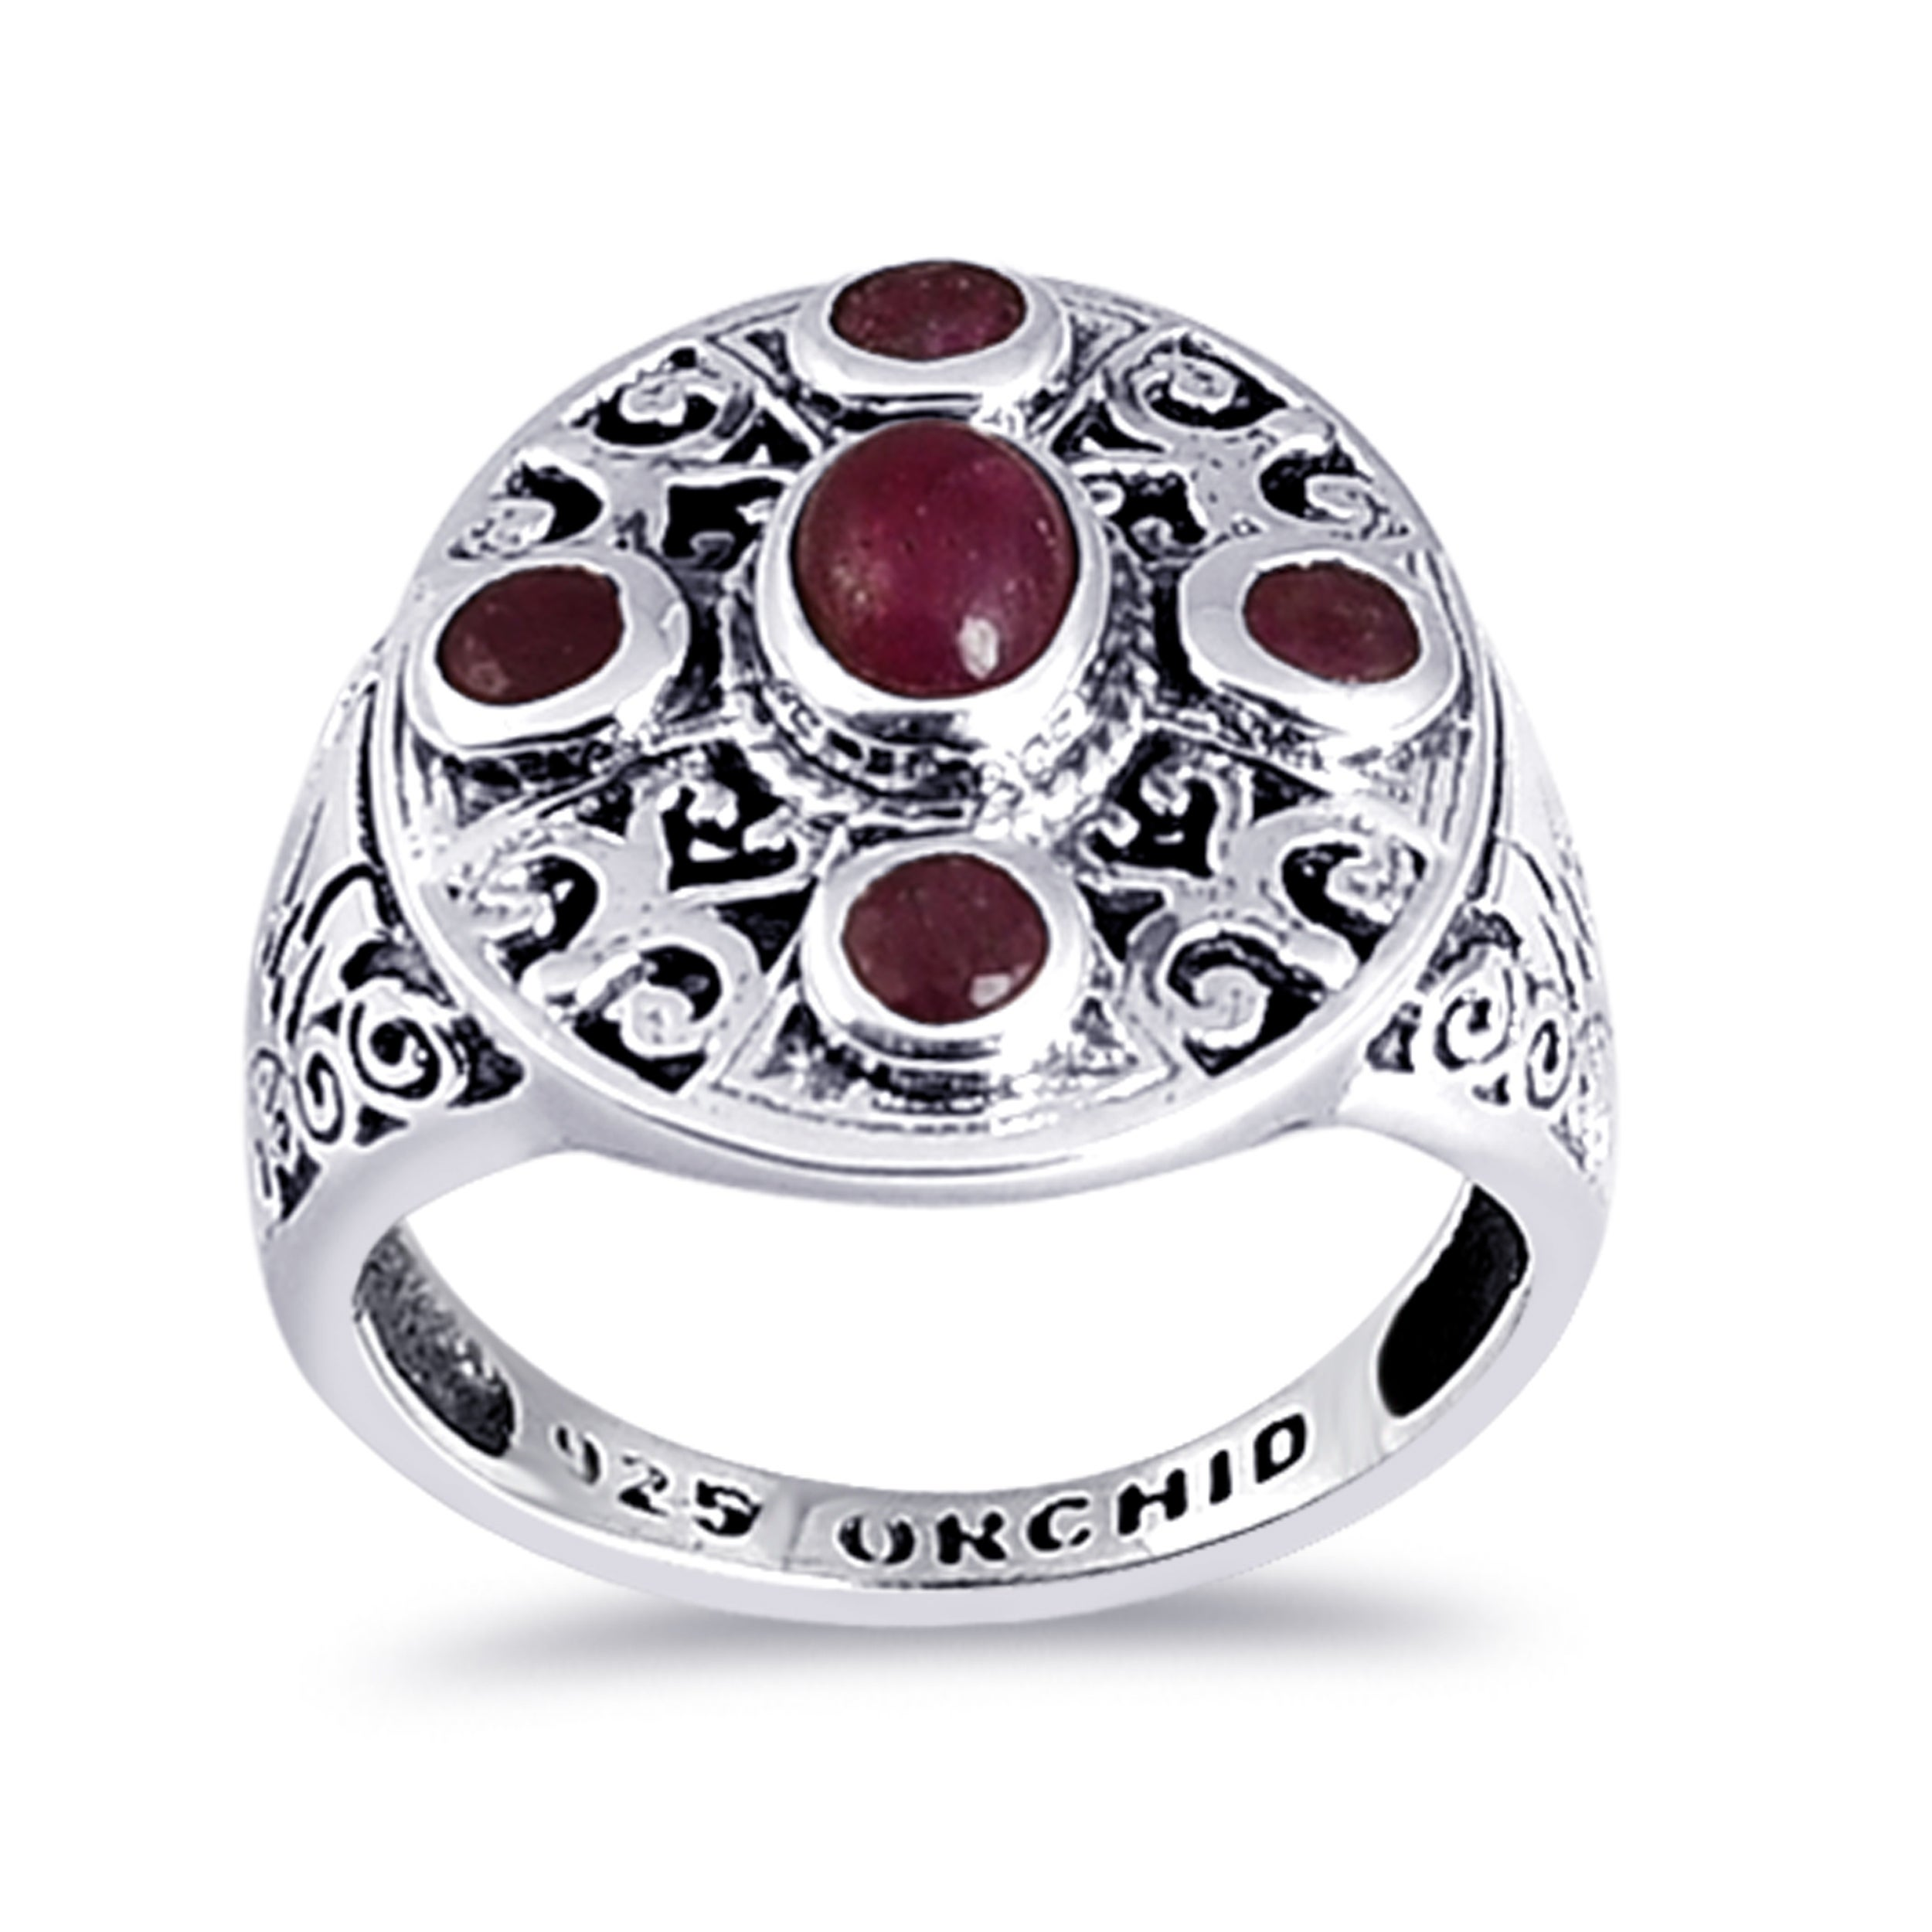 Campton Gold Plated Sterling Silver Stud Earrings Round 6mm Large 13473 Model ERRNGS Red Garnet CZ~January